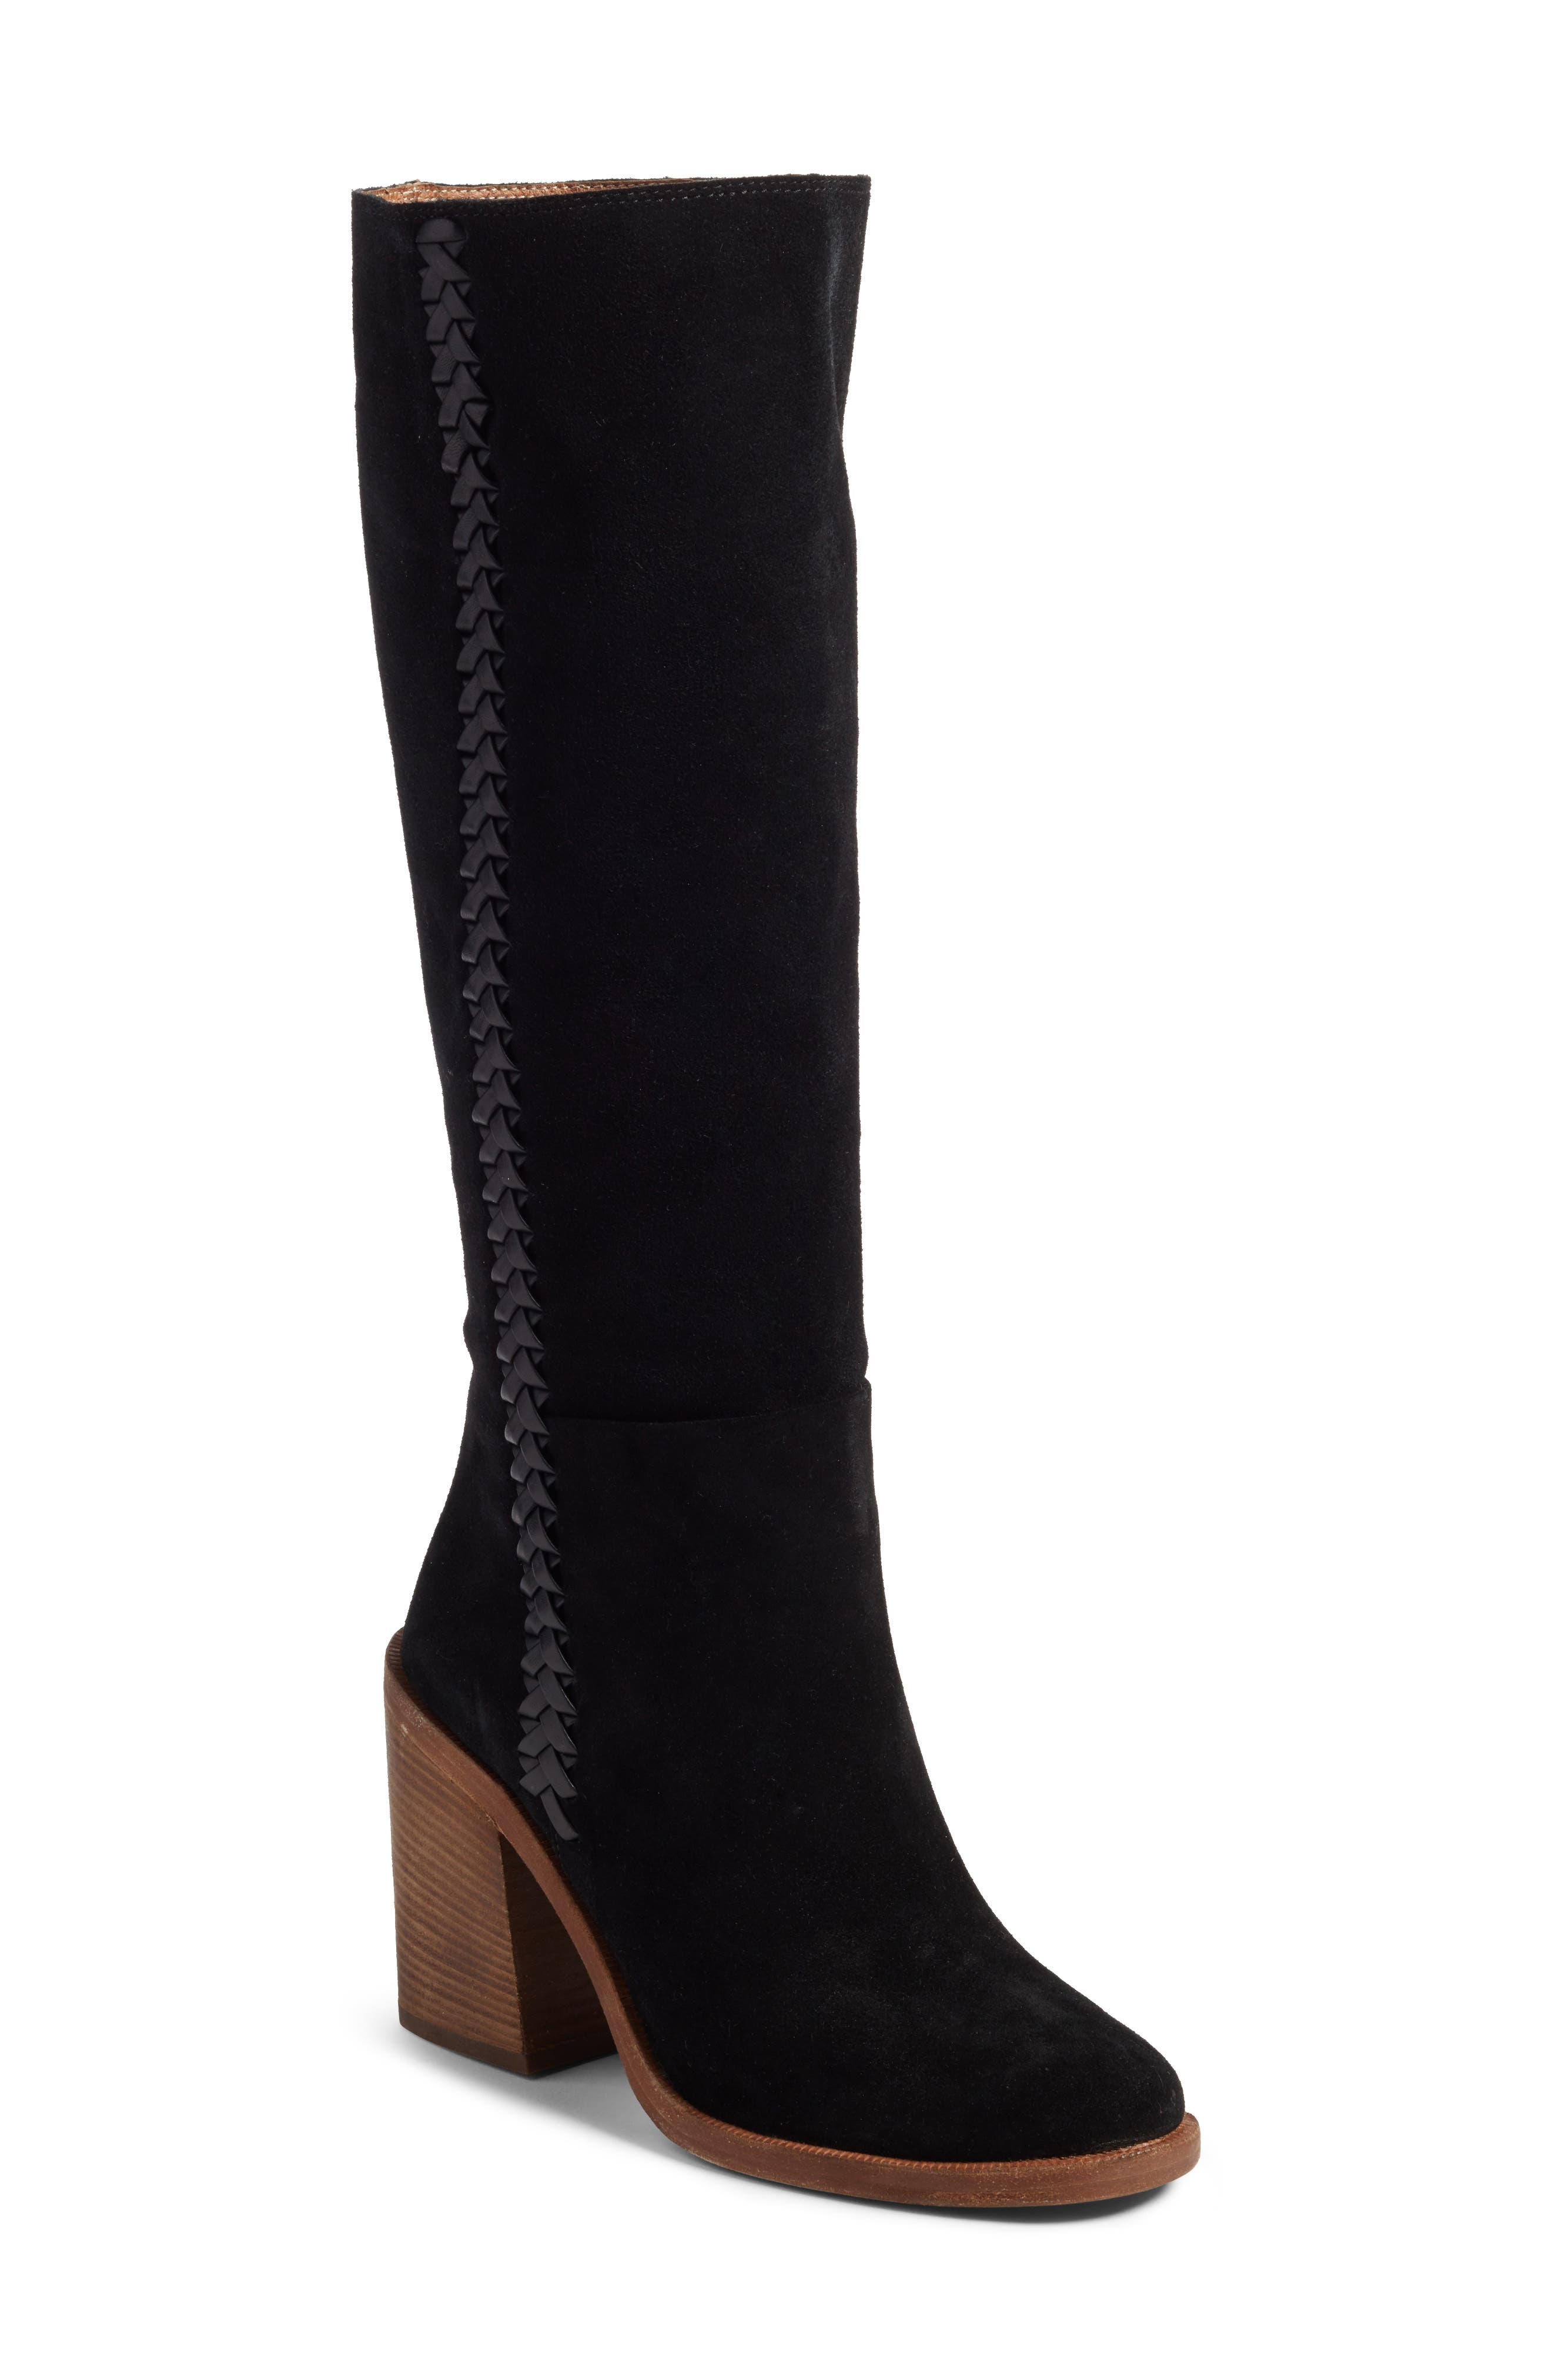 Main Image - UGG® Maeva Knee High Boot (Women)